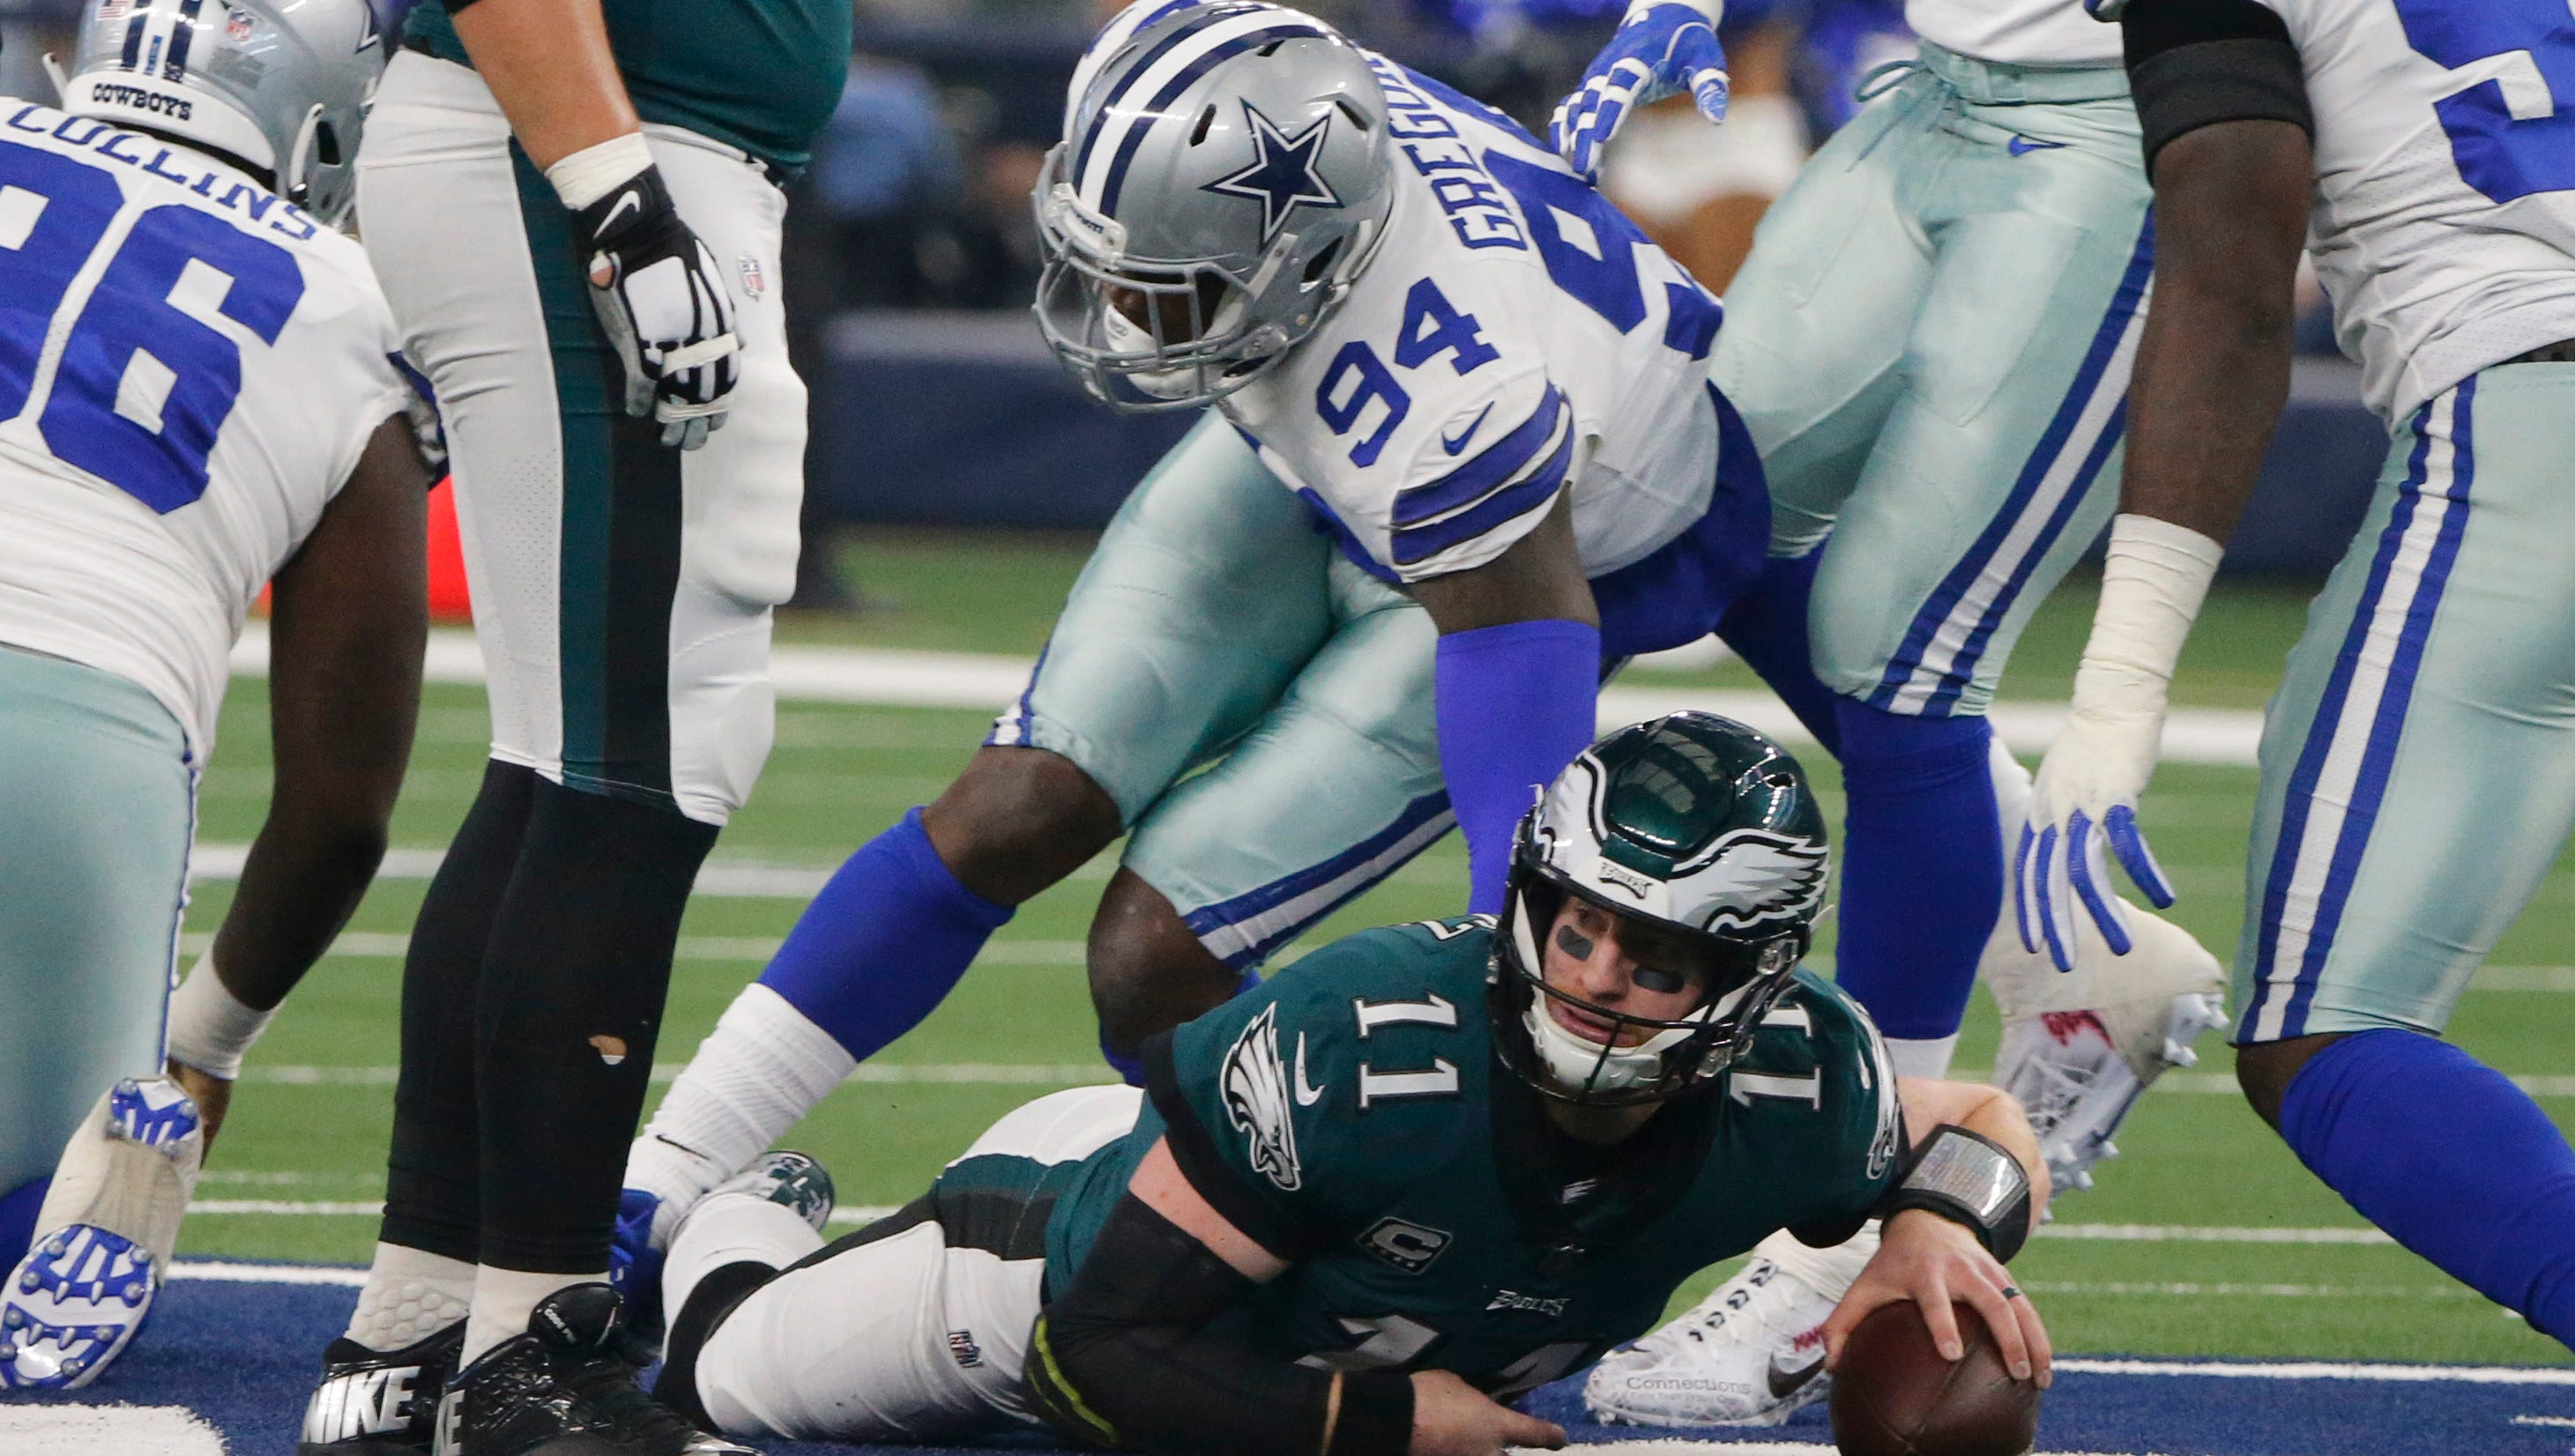 """Eagles coach Doug Pederson said Wentz's back injury """"evolved over time"""" and tests Tuesday showed the stress fracture, but his playing status is still uncertain."""